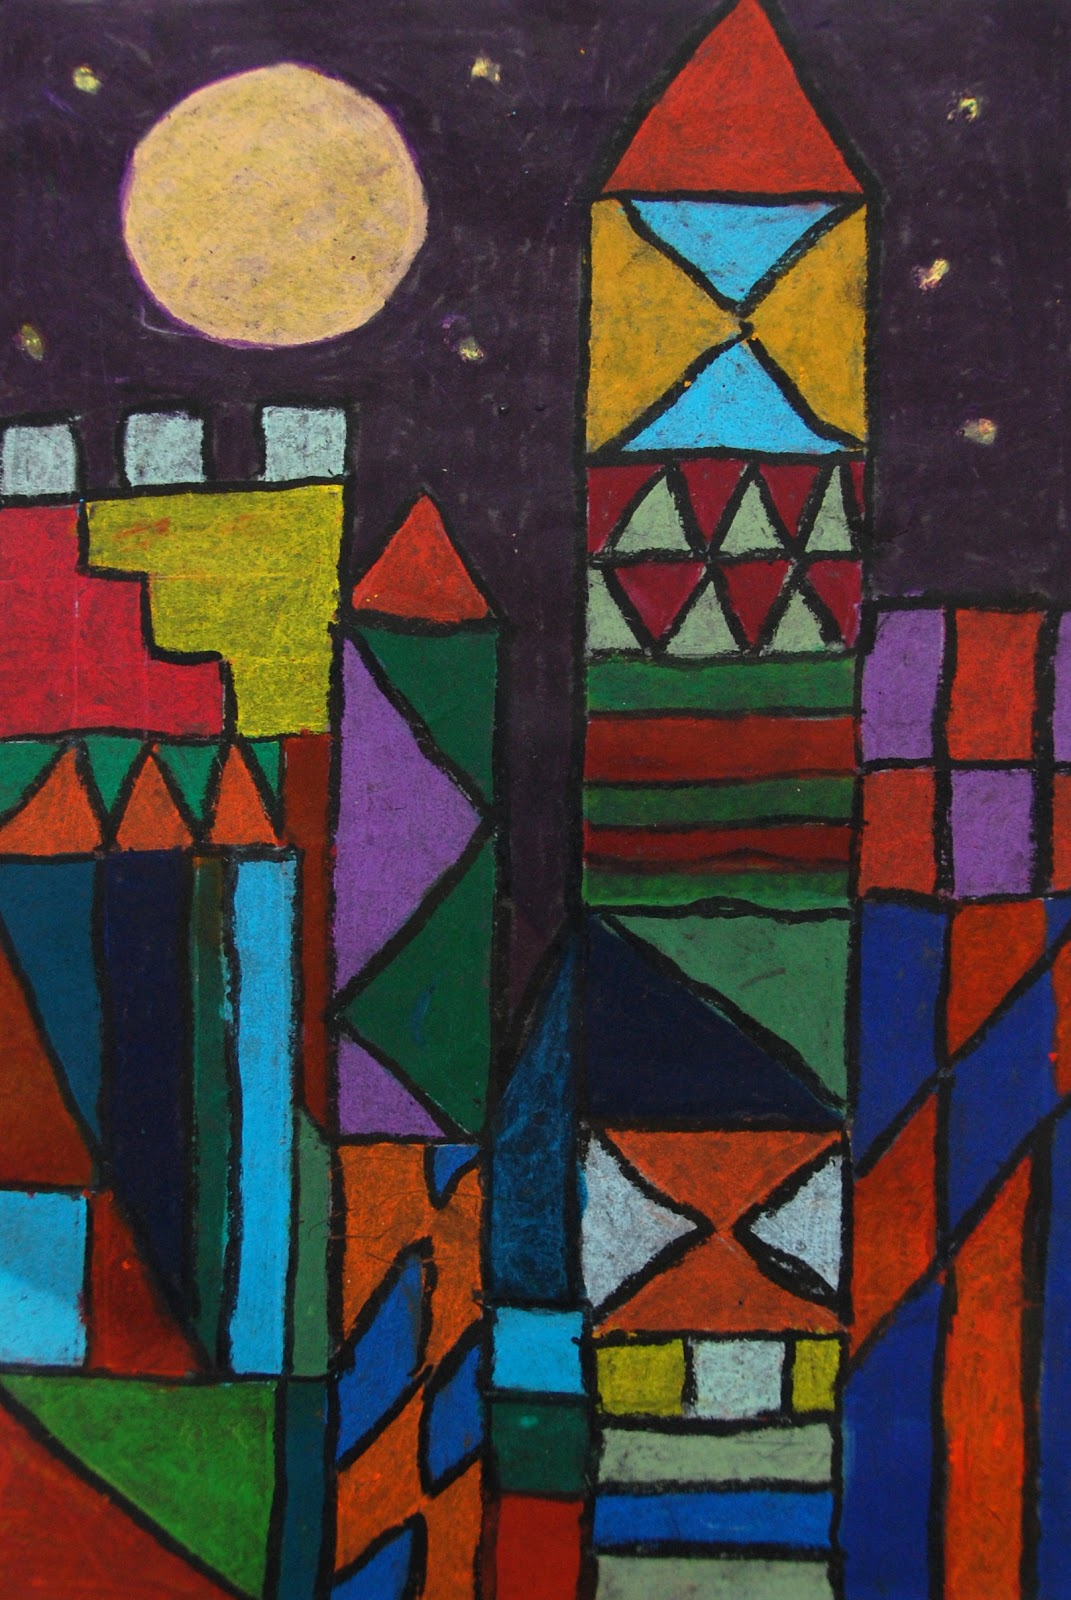 Paul Klee Artwork and Ideas for Primary School Children